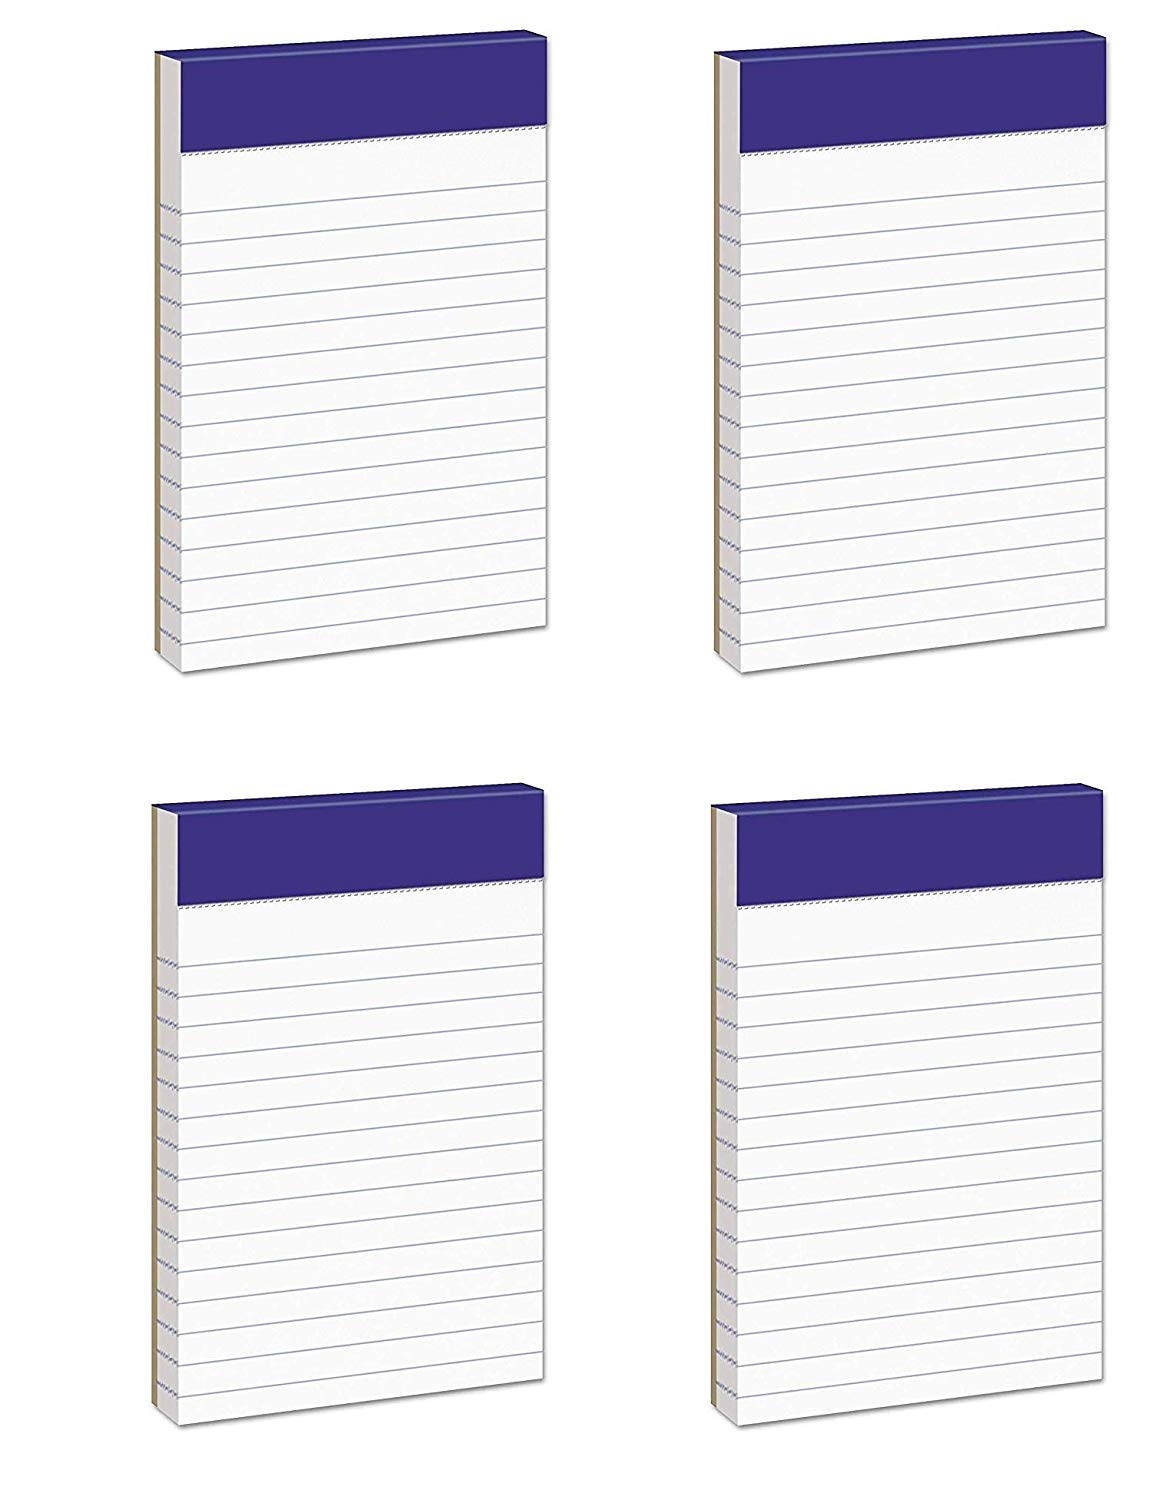 Ampad 20-208 Evidence 3'' x 5'' Narrow Perforated Writing Pads - White (12 Pads of 50 Sheets Each) (Pack of 4)